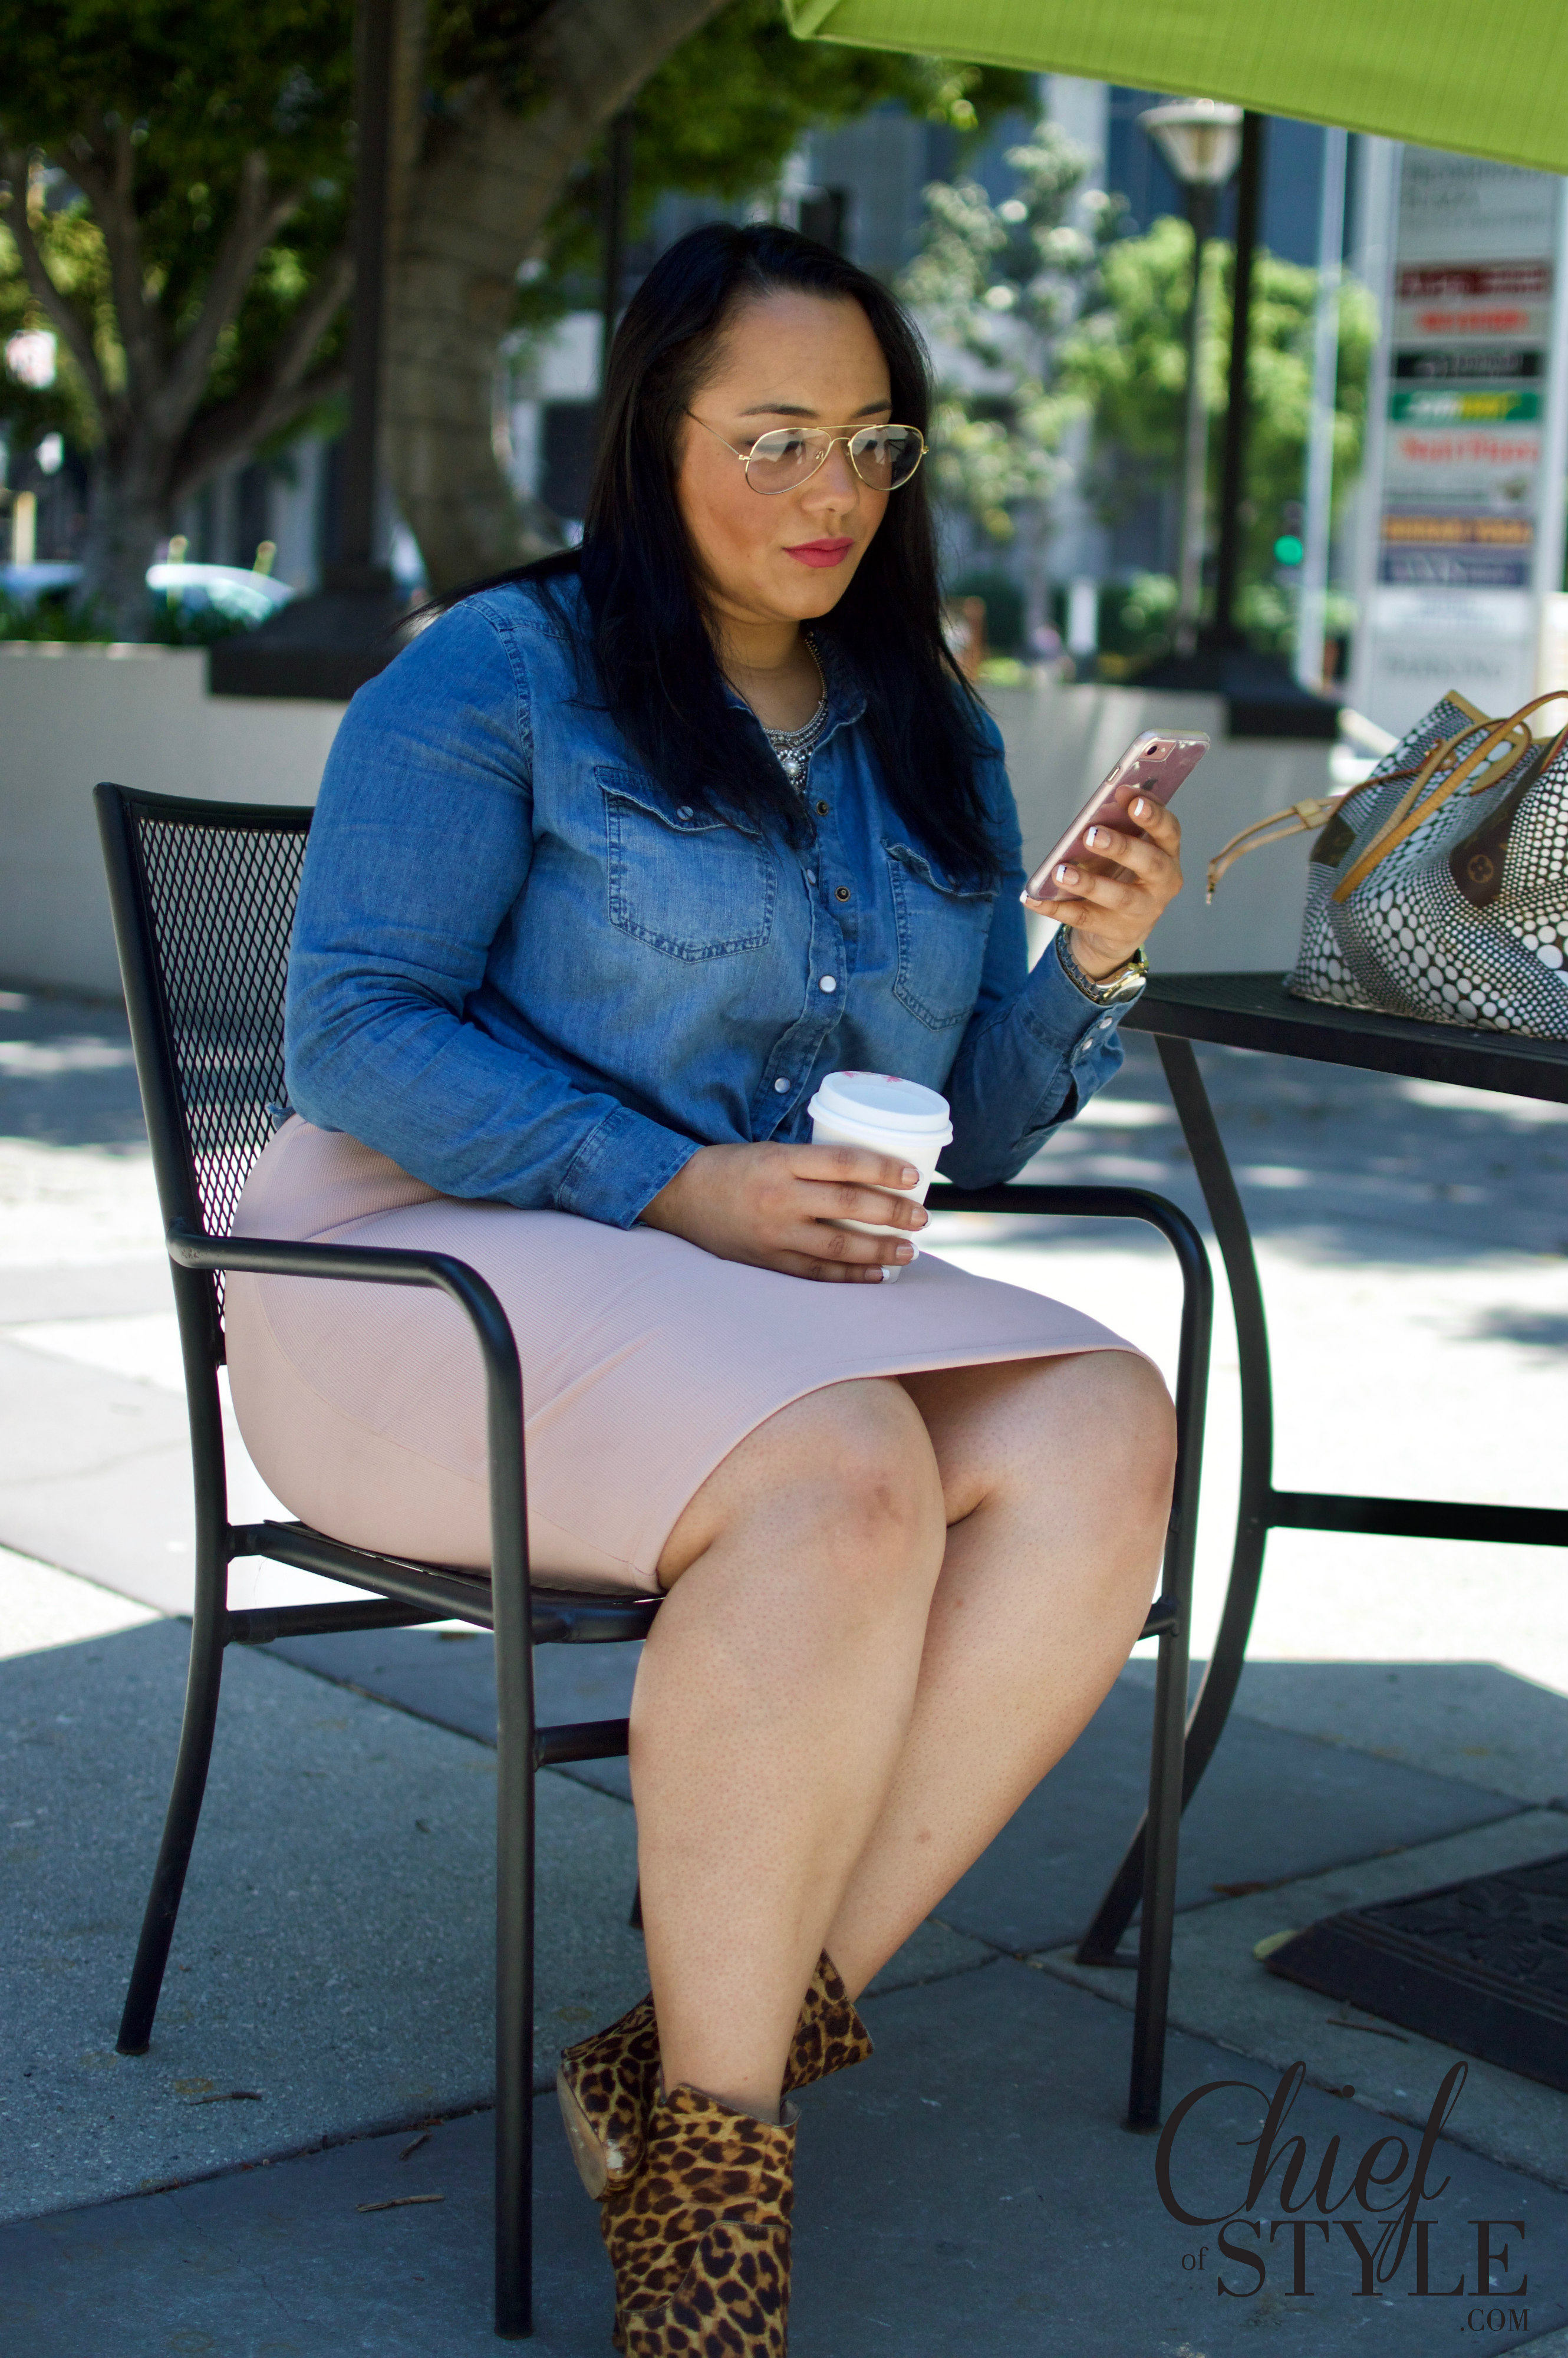 Amy Stretten, The Chief of Style, lover of plus size fashion, wearing Forever 21 Plus.